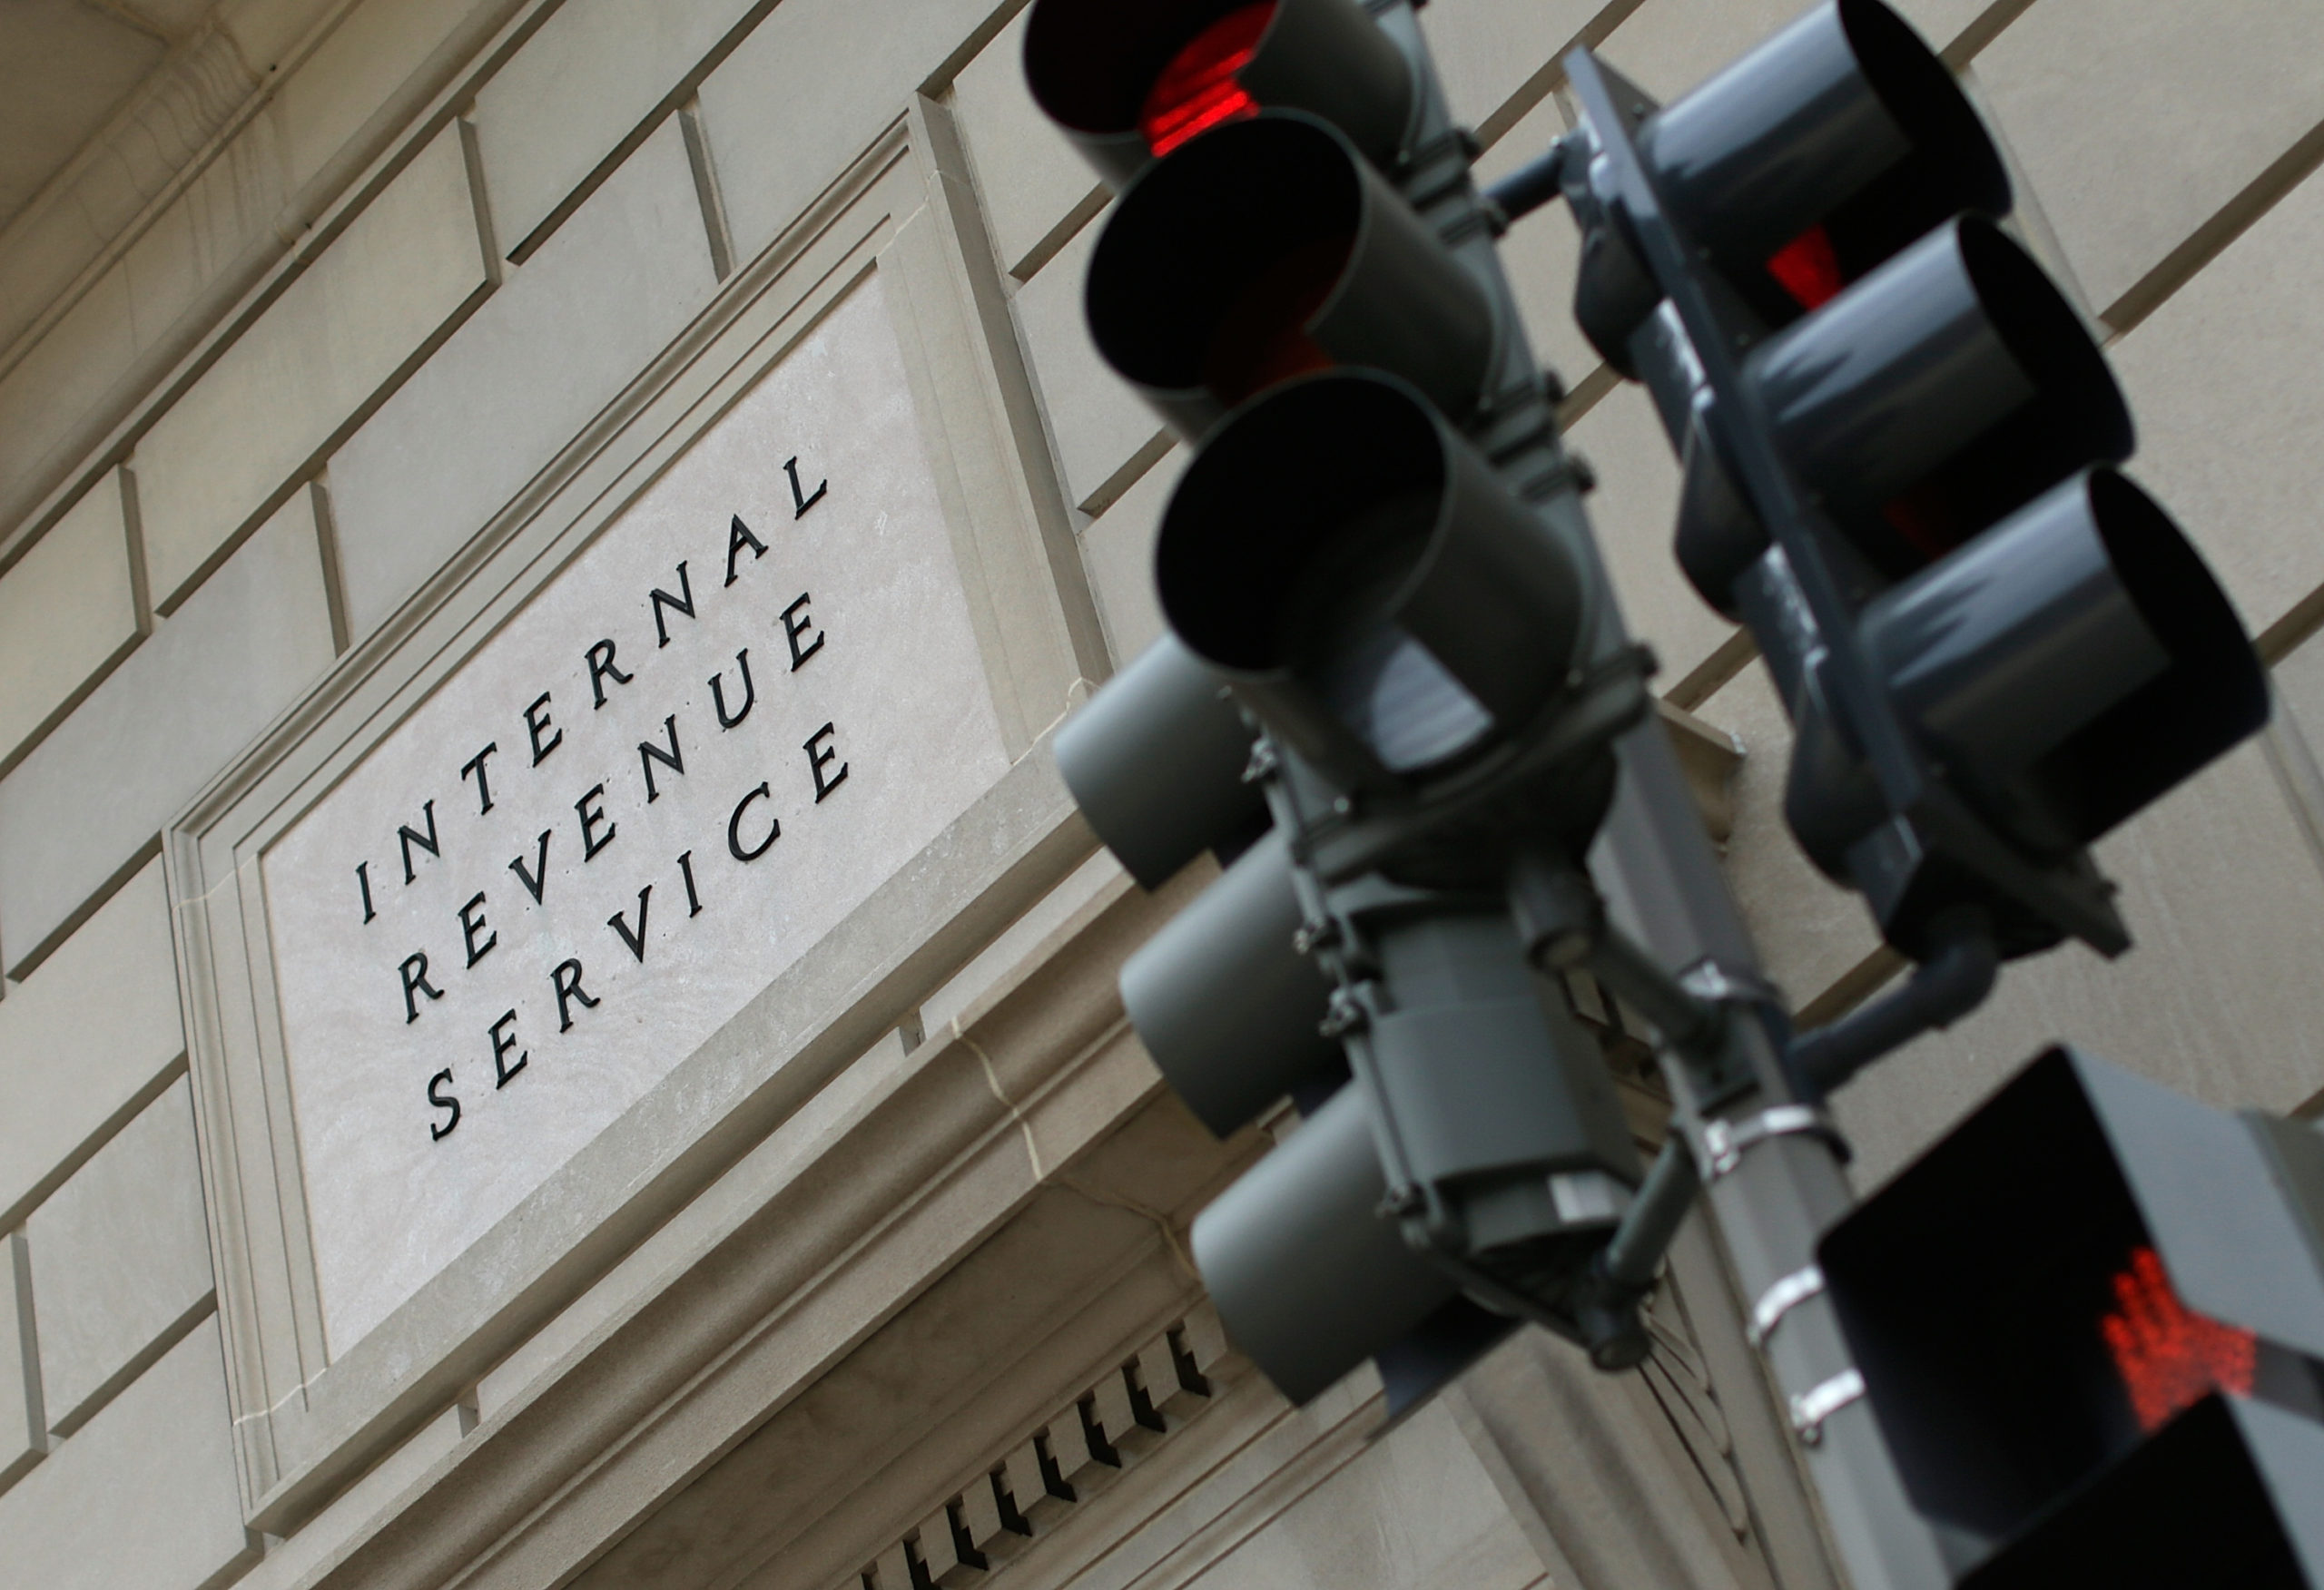 WASHINGTON, DC - JULY 22: The Internal Revenue Service Building is shown July 22, 2013 in Washington, DC. Due to current shortfalls in the federal budget, all Internal Revenue Service operations are closed today, with another furlough day scheduled for next month. (Photo by Win McNamee/Getty Images)